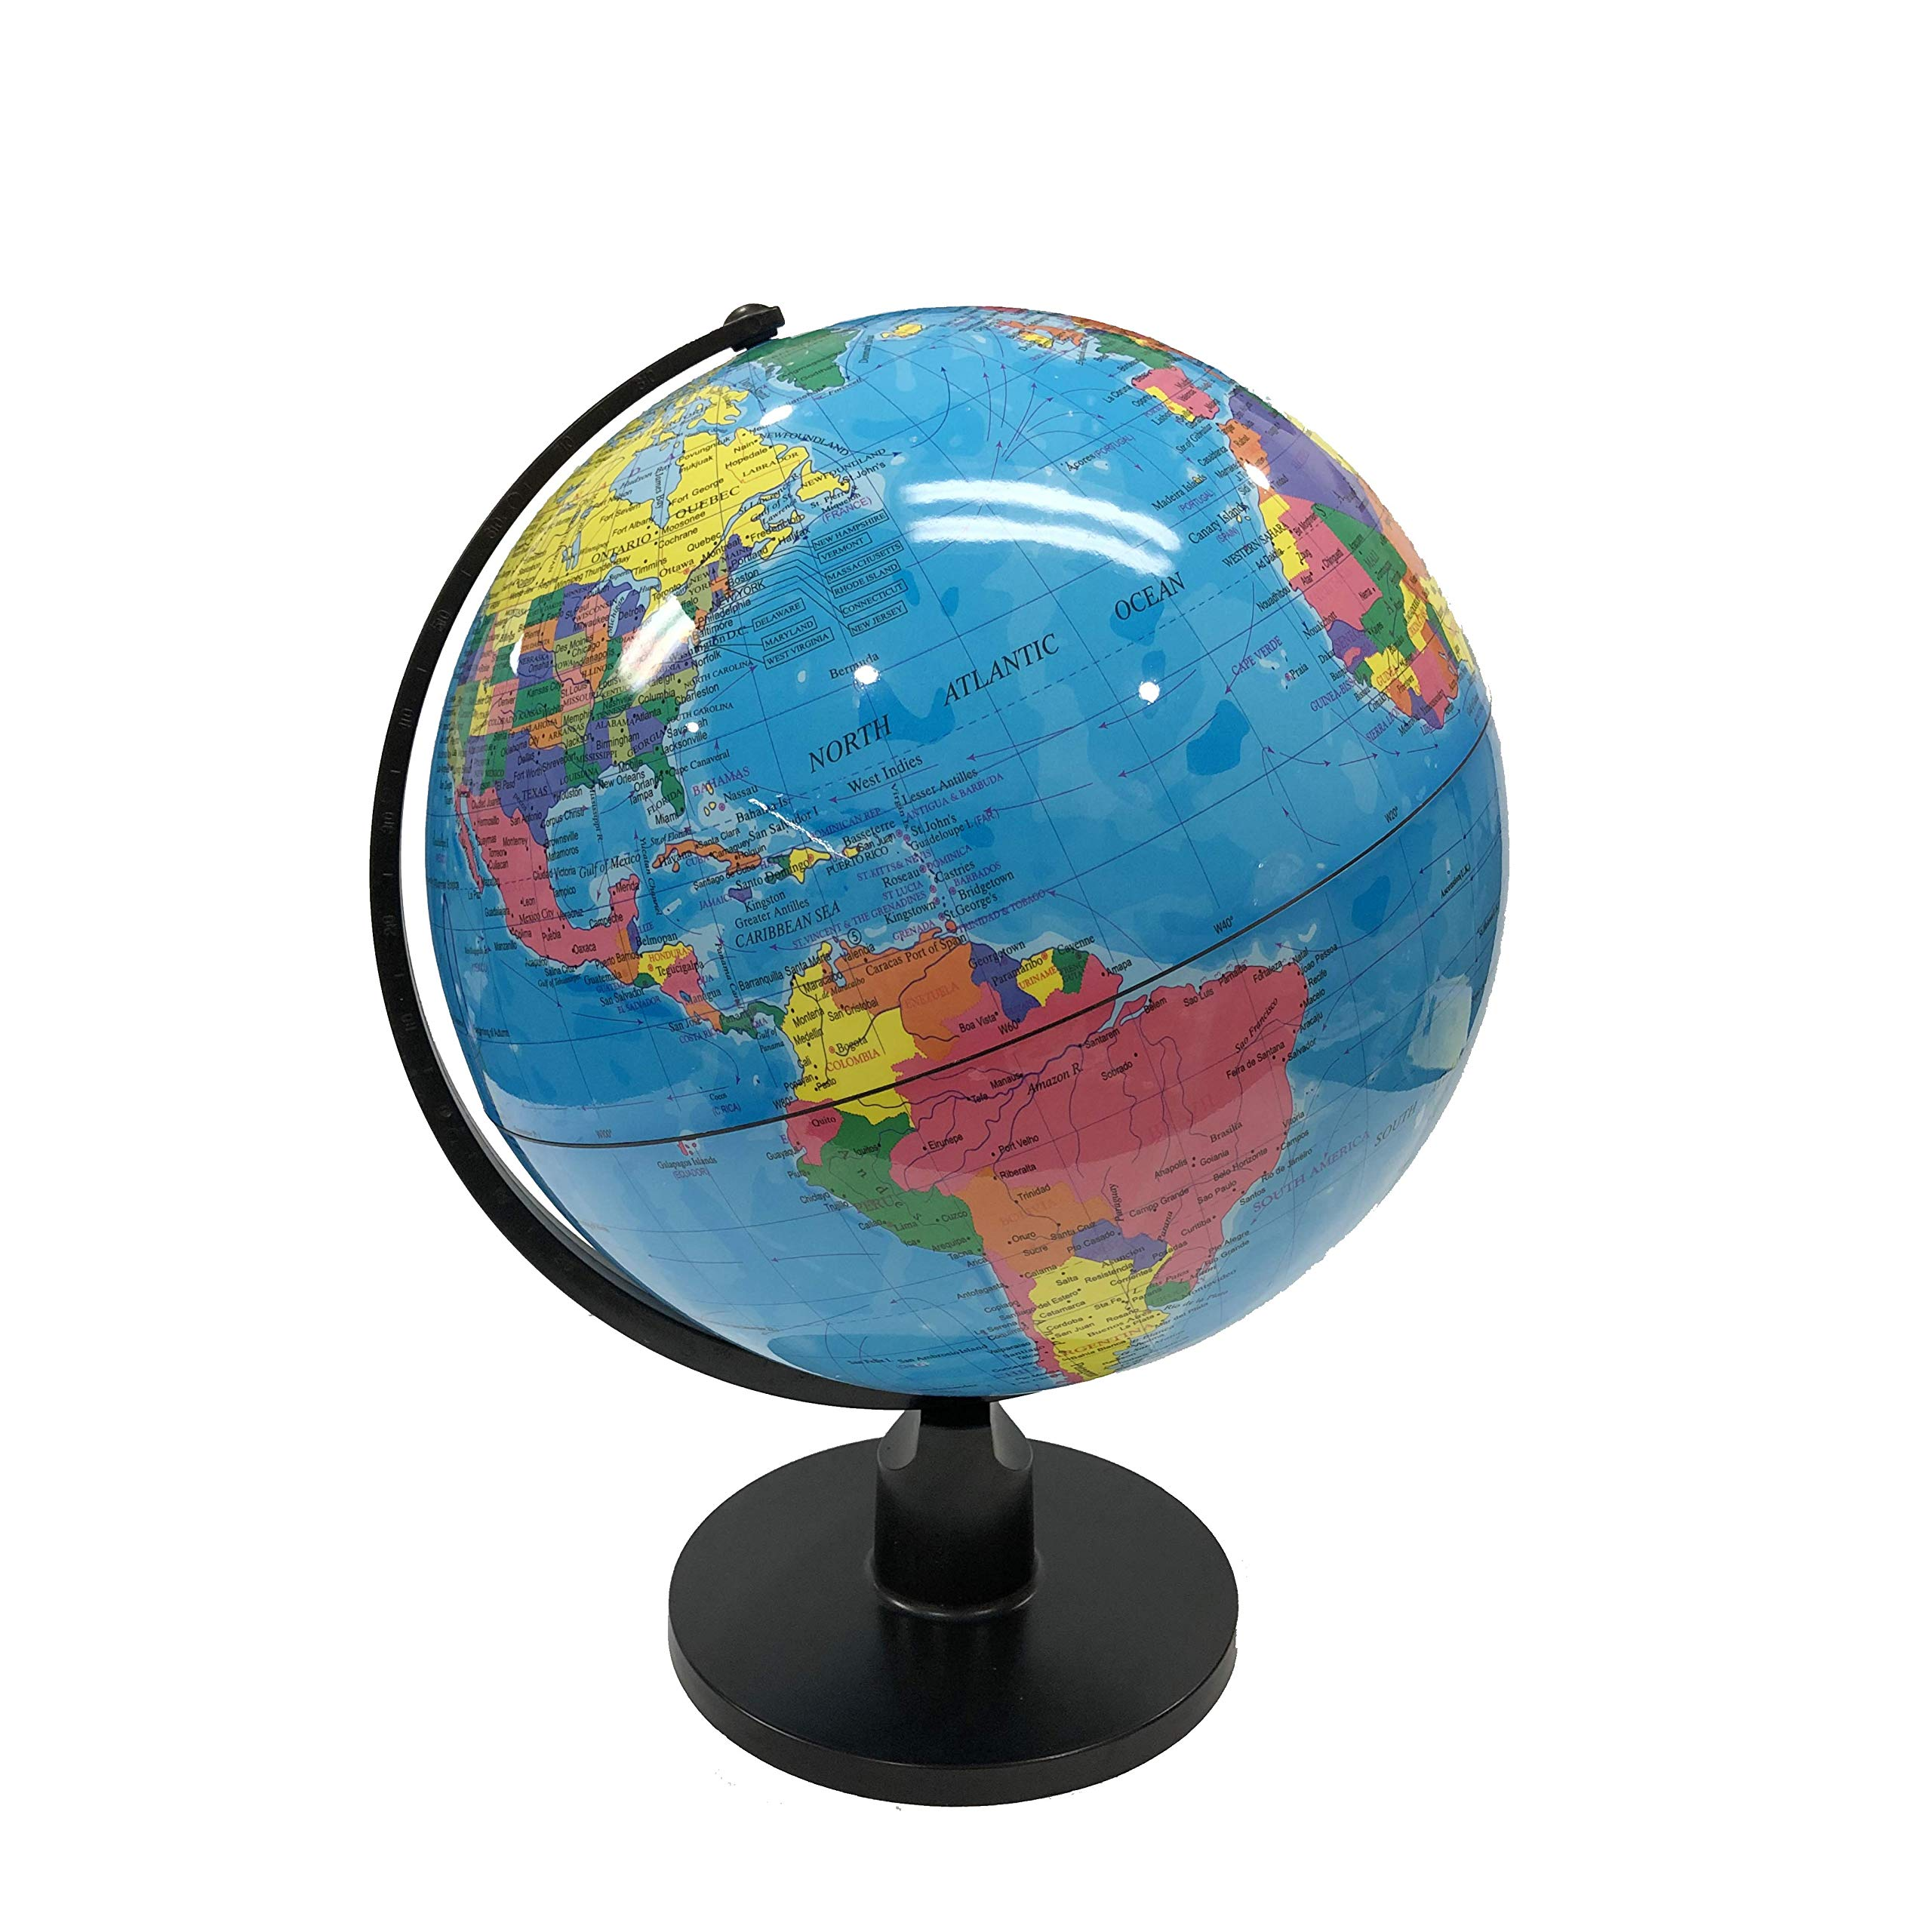 World Globe Great for Kids and Adults with Stand Desk 8 Inch Globe 12 Inch Educational Deluxe Blue Ocean Black Base Full Earth Geography ... (Blue Ocean, 12 Inch Diameter)